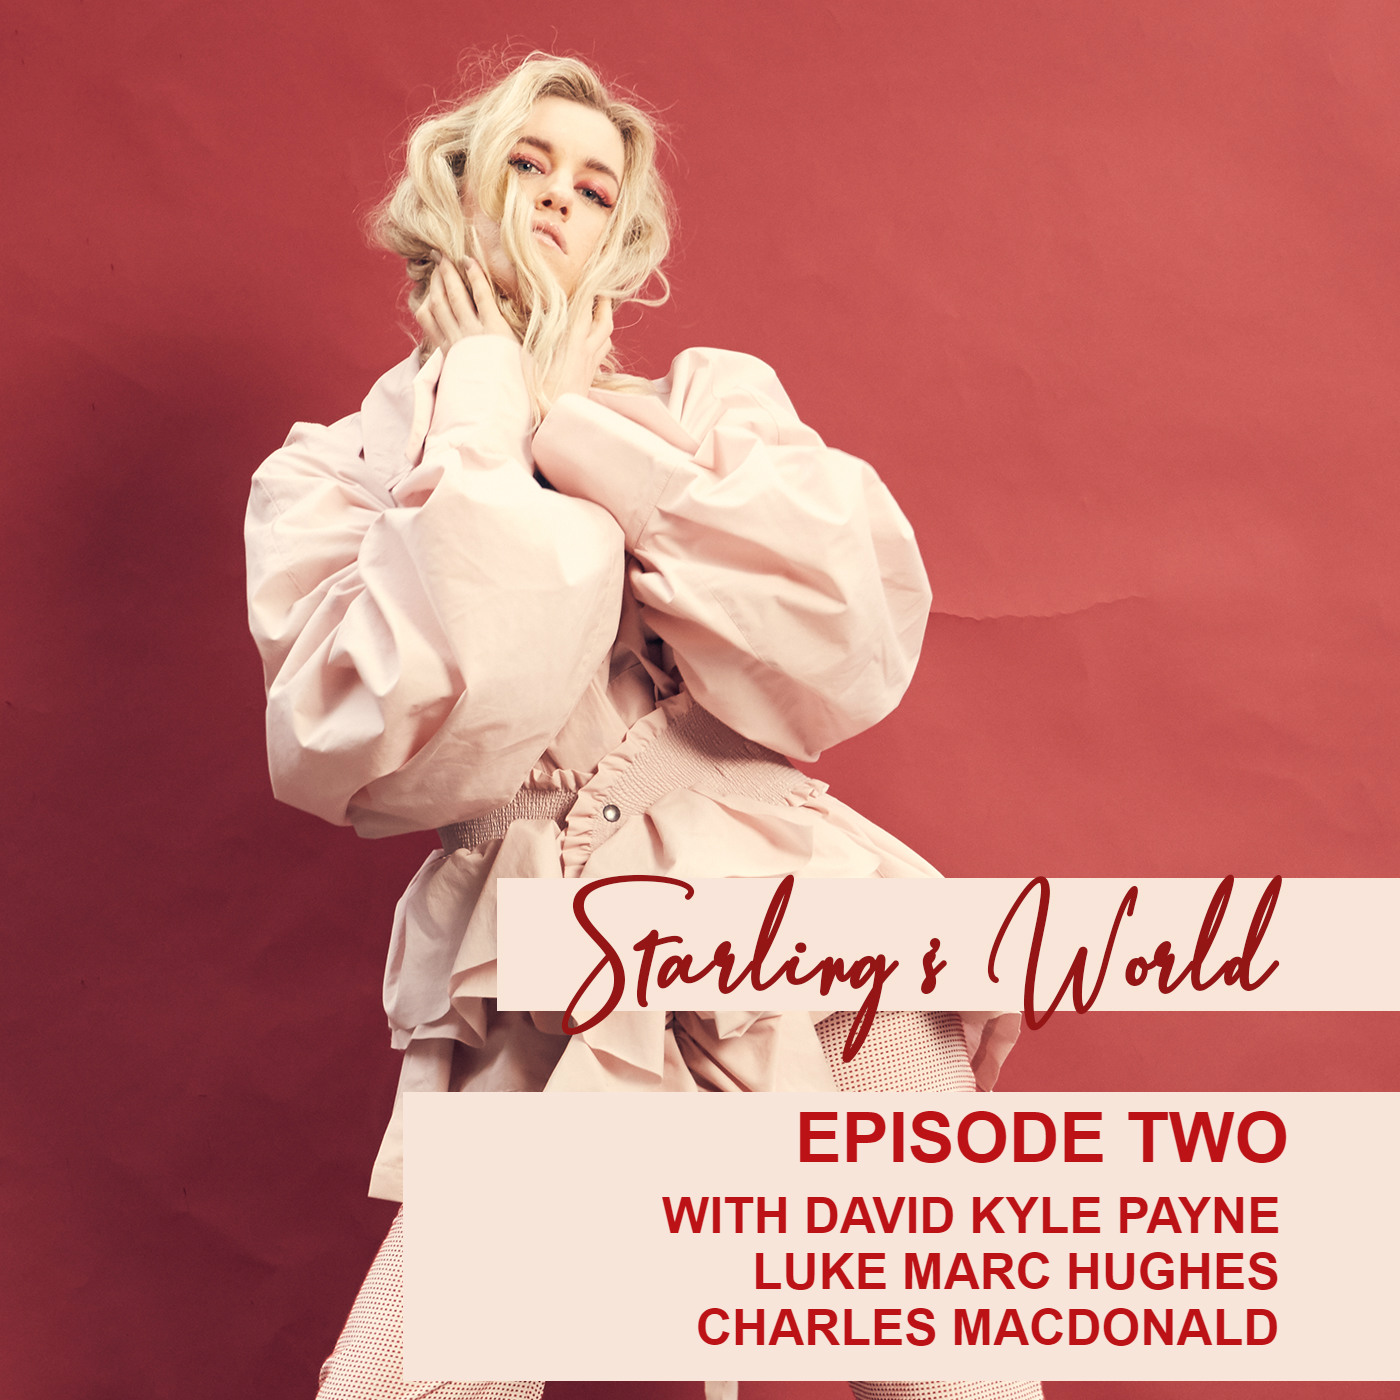 Starling's World meets three world-touring session musicians at the top of their game - Episode 2